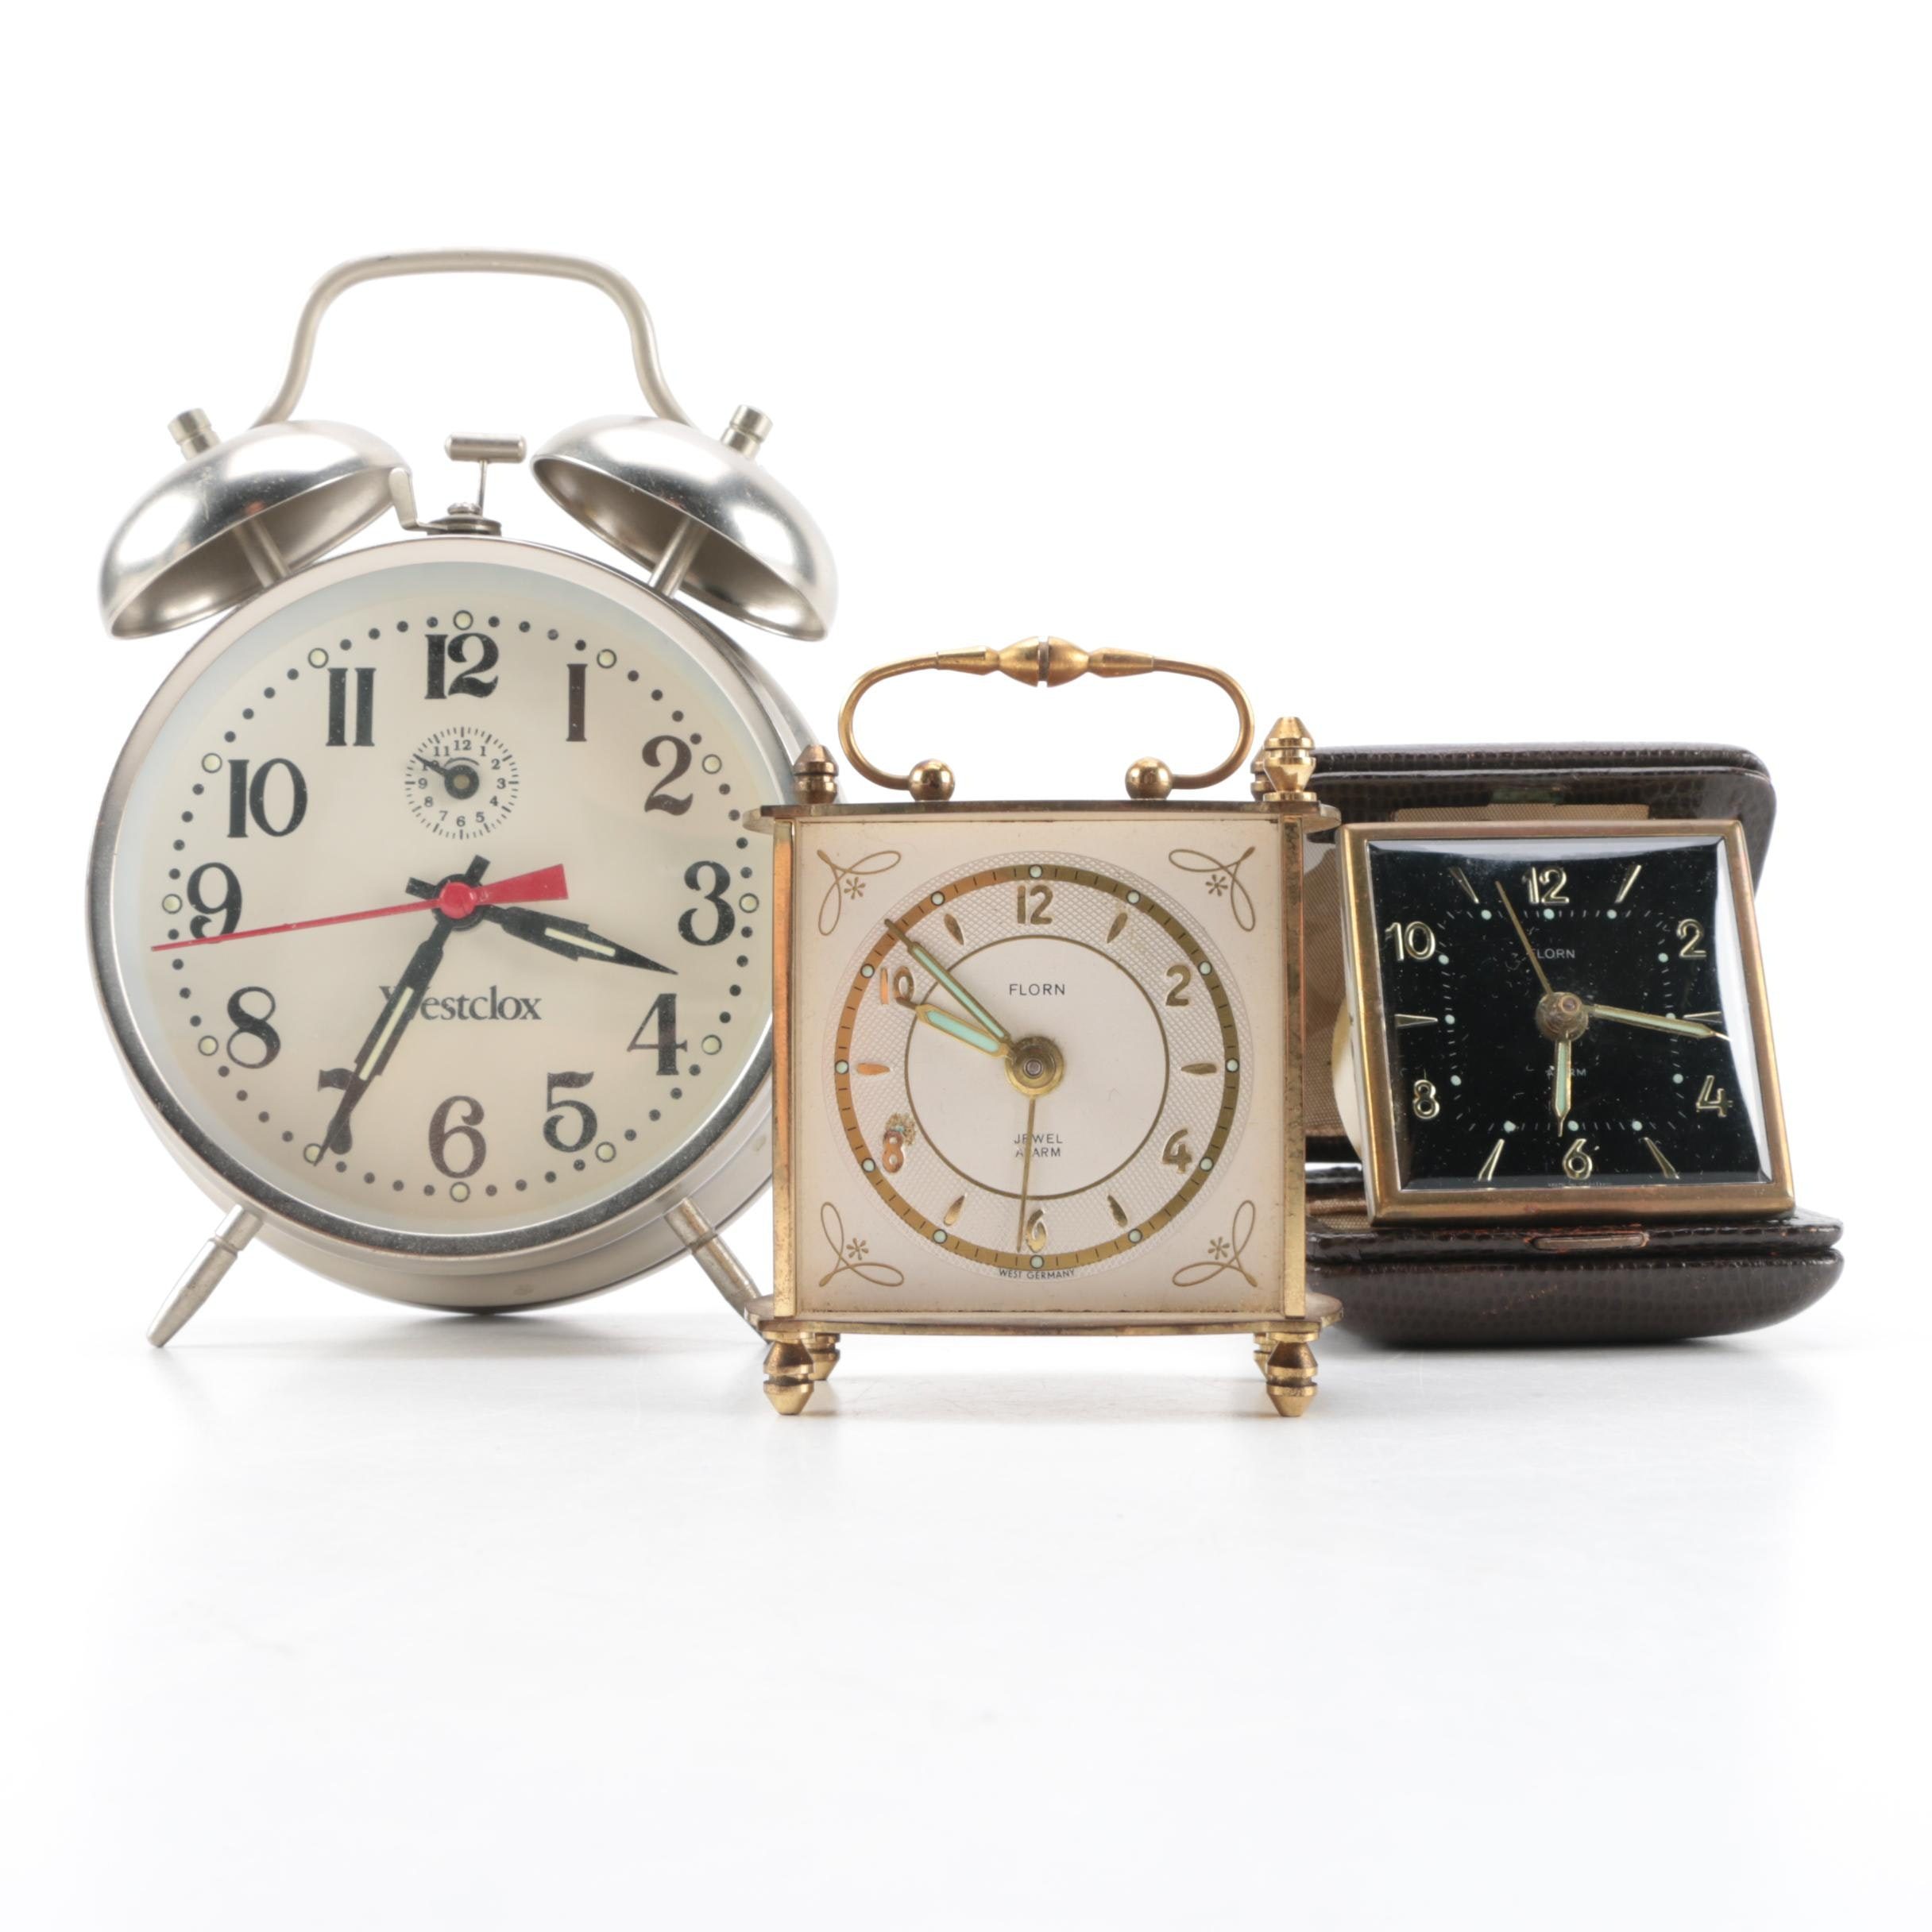 Florn and Westclox Alarm Clocks